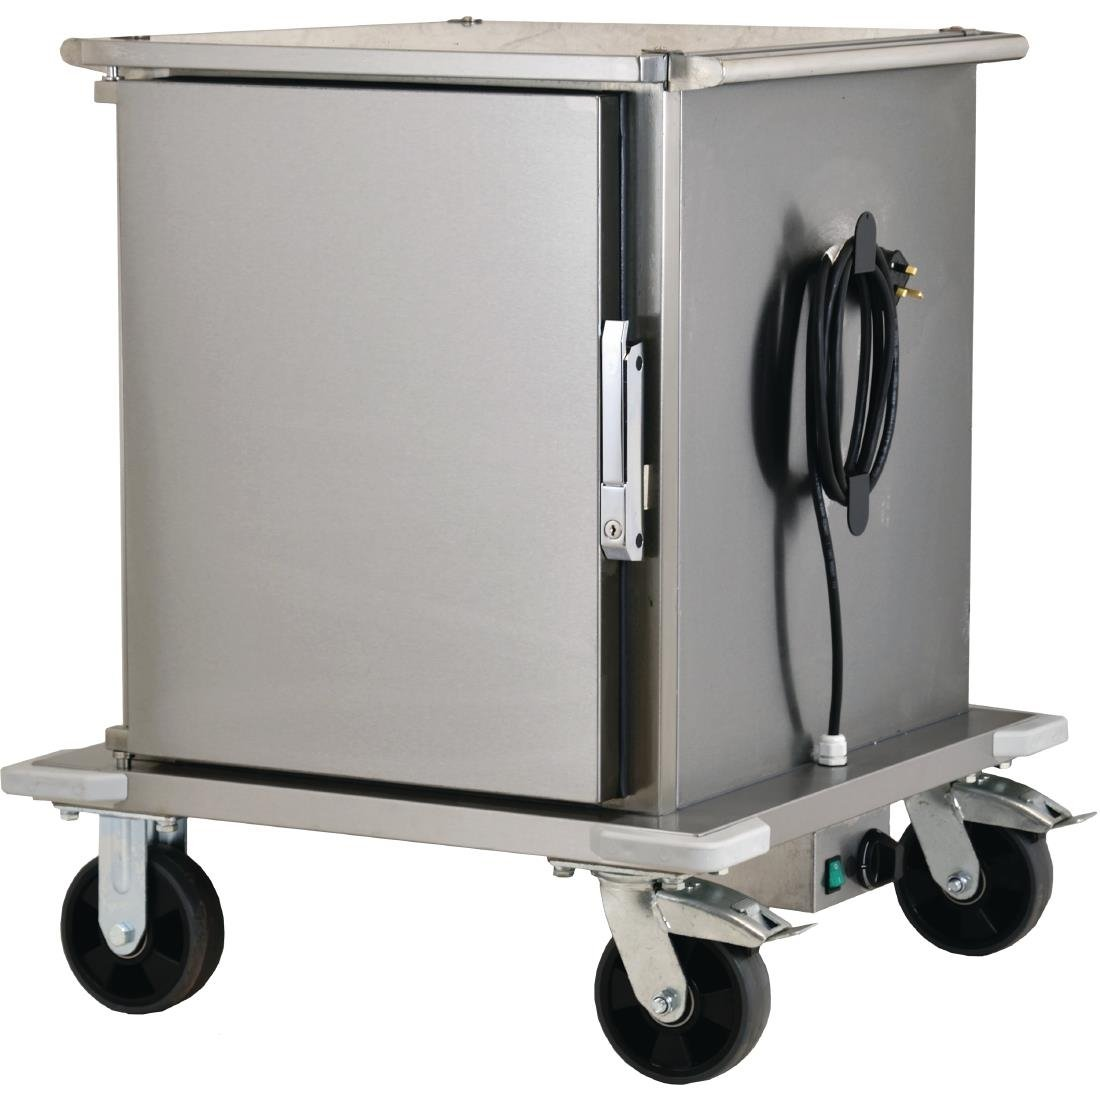 Moffat Mobile Banqueting Trolley PF6